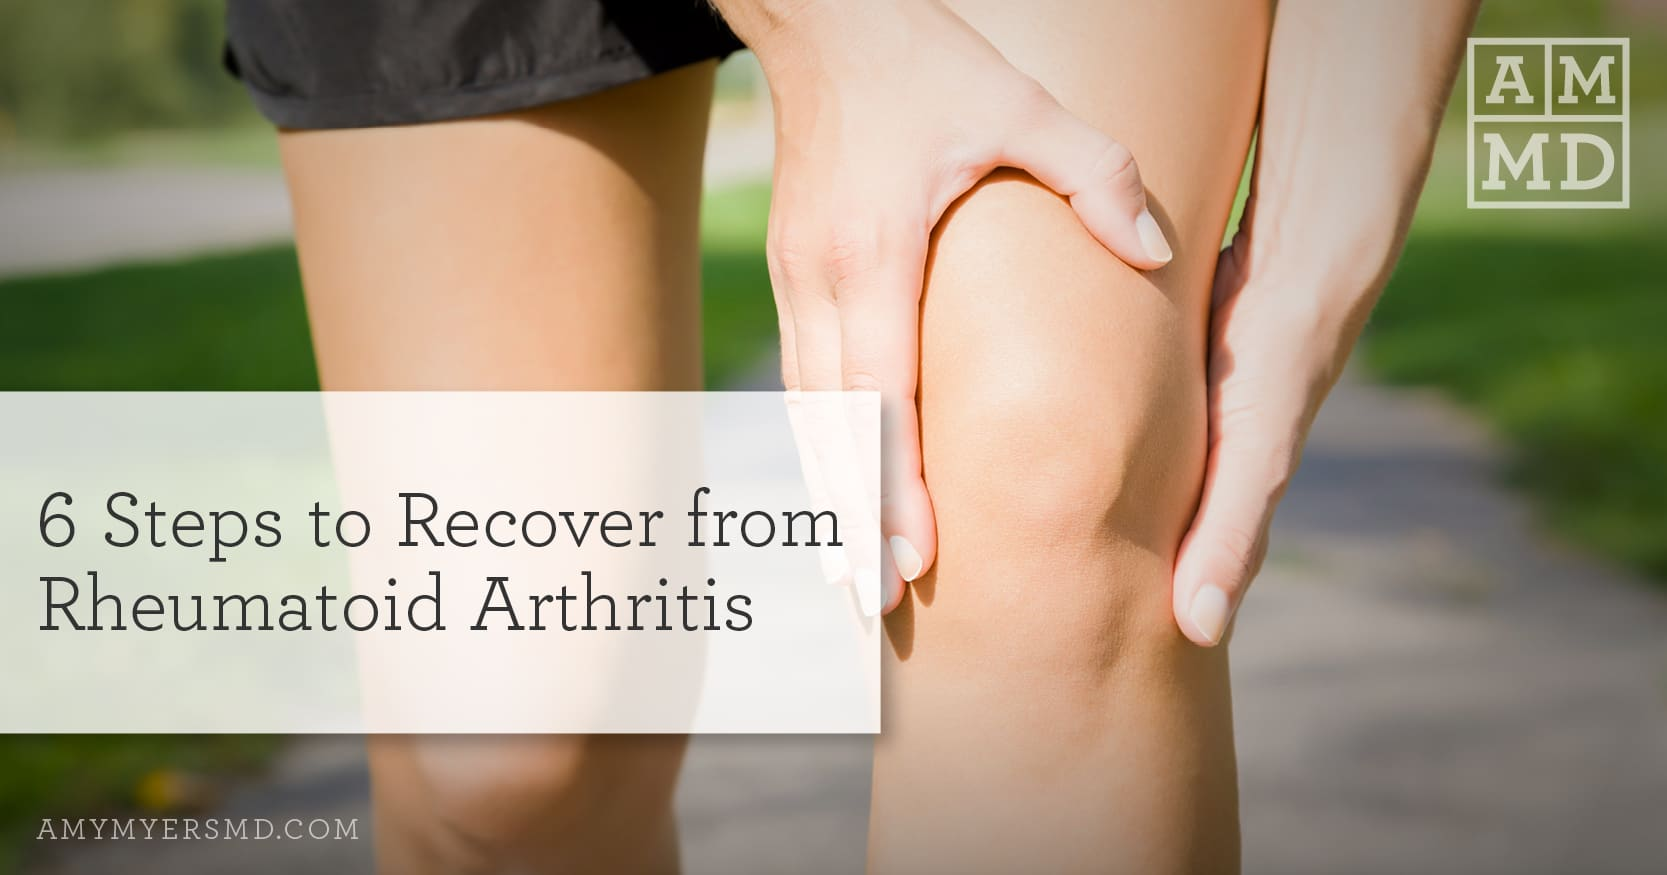 6 Steps to Recover from Rheumatoid Arthritis - Woman holding her knee - Featured Image - Amy Myers MD